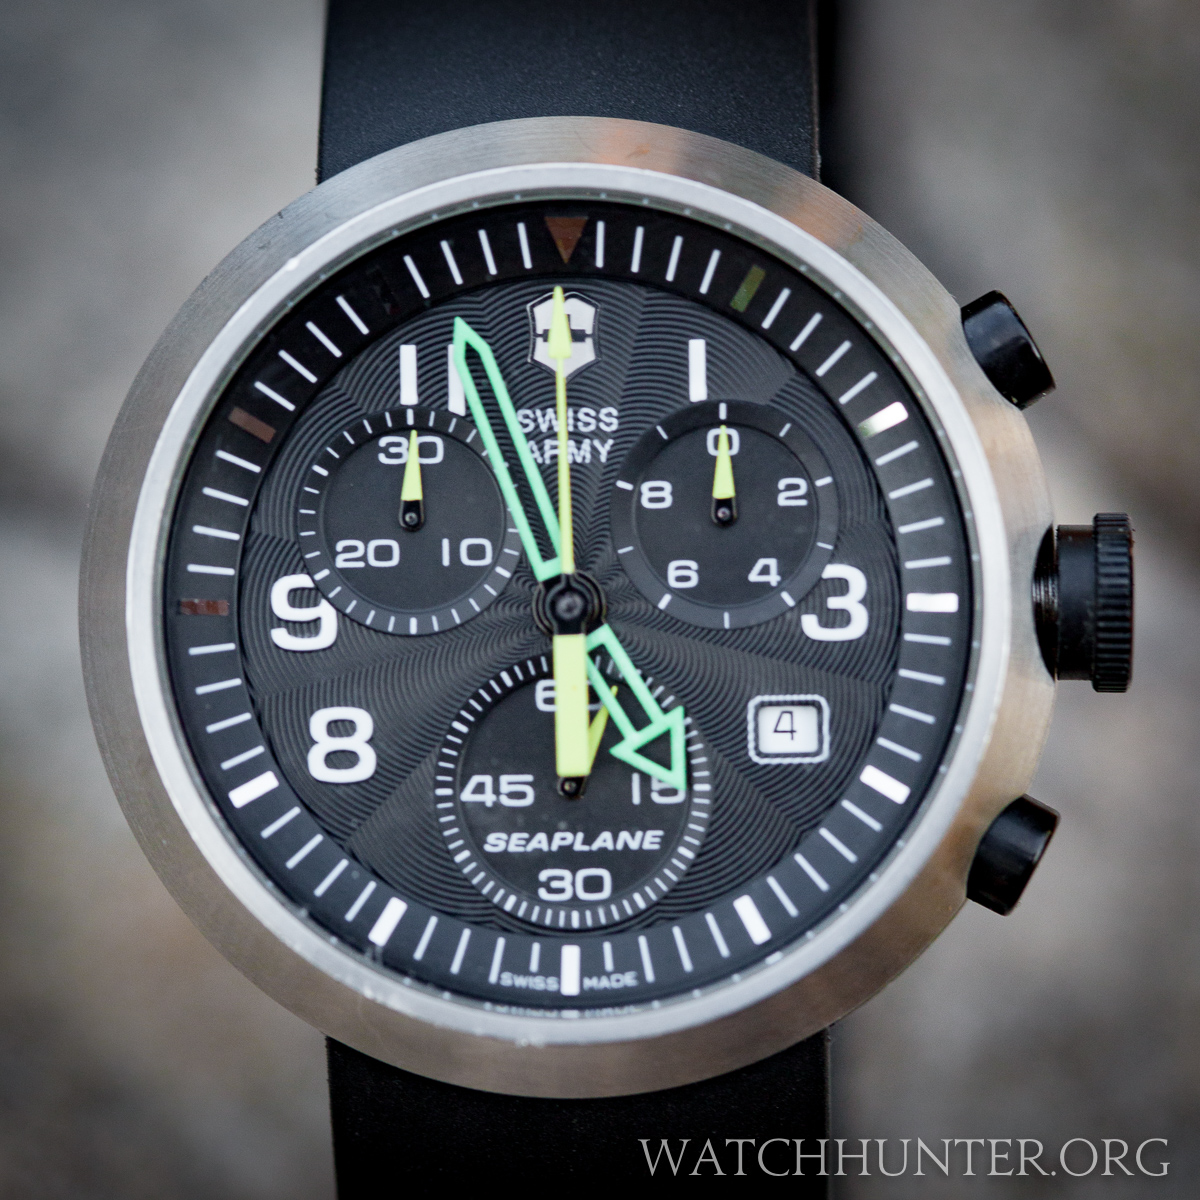 The Victorinox Swiss Army SeaPlane Chronograph had applied indices, a guilloche dial and brightly colored hands